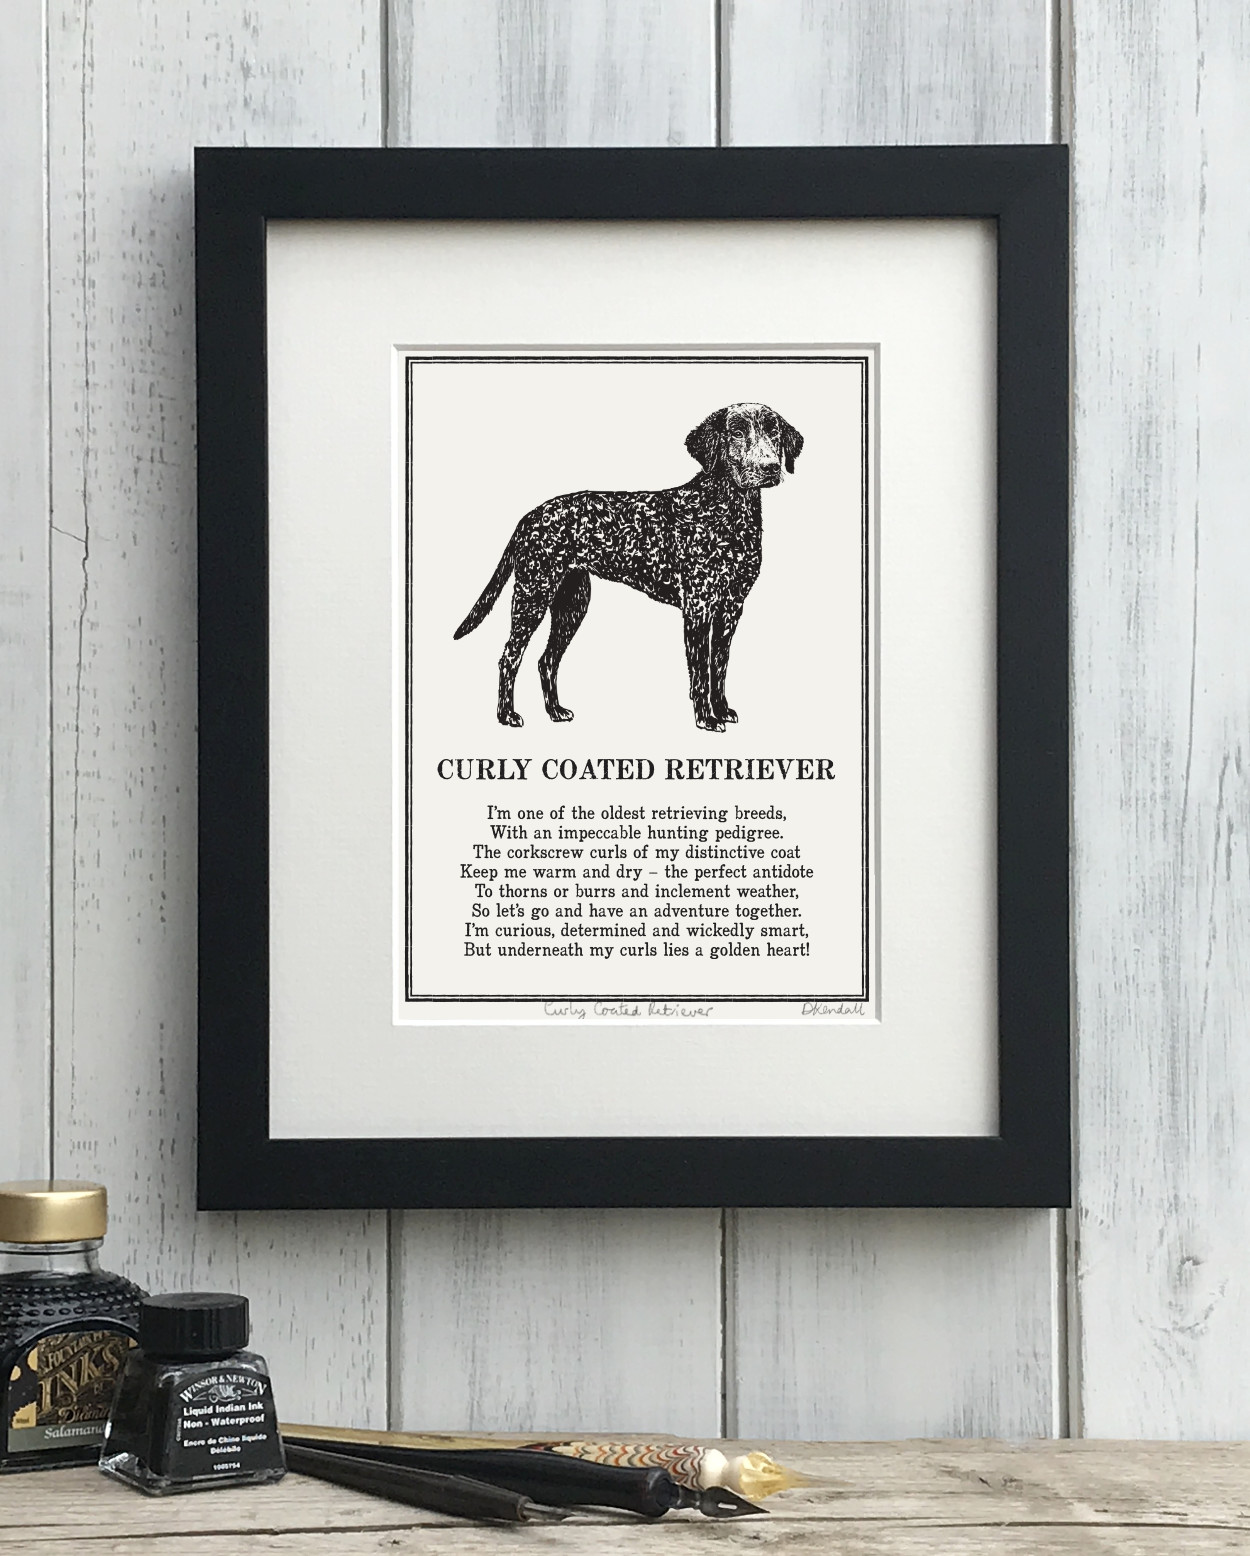 Curly Coated Retriever Doggerel Illustrated Poem Art Print | The Enlightened Hound